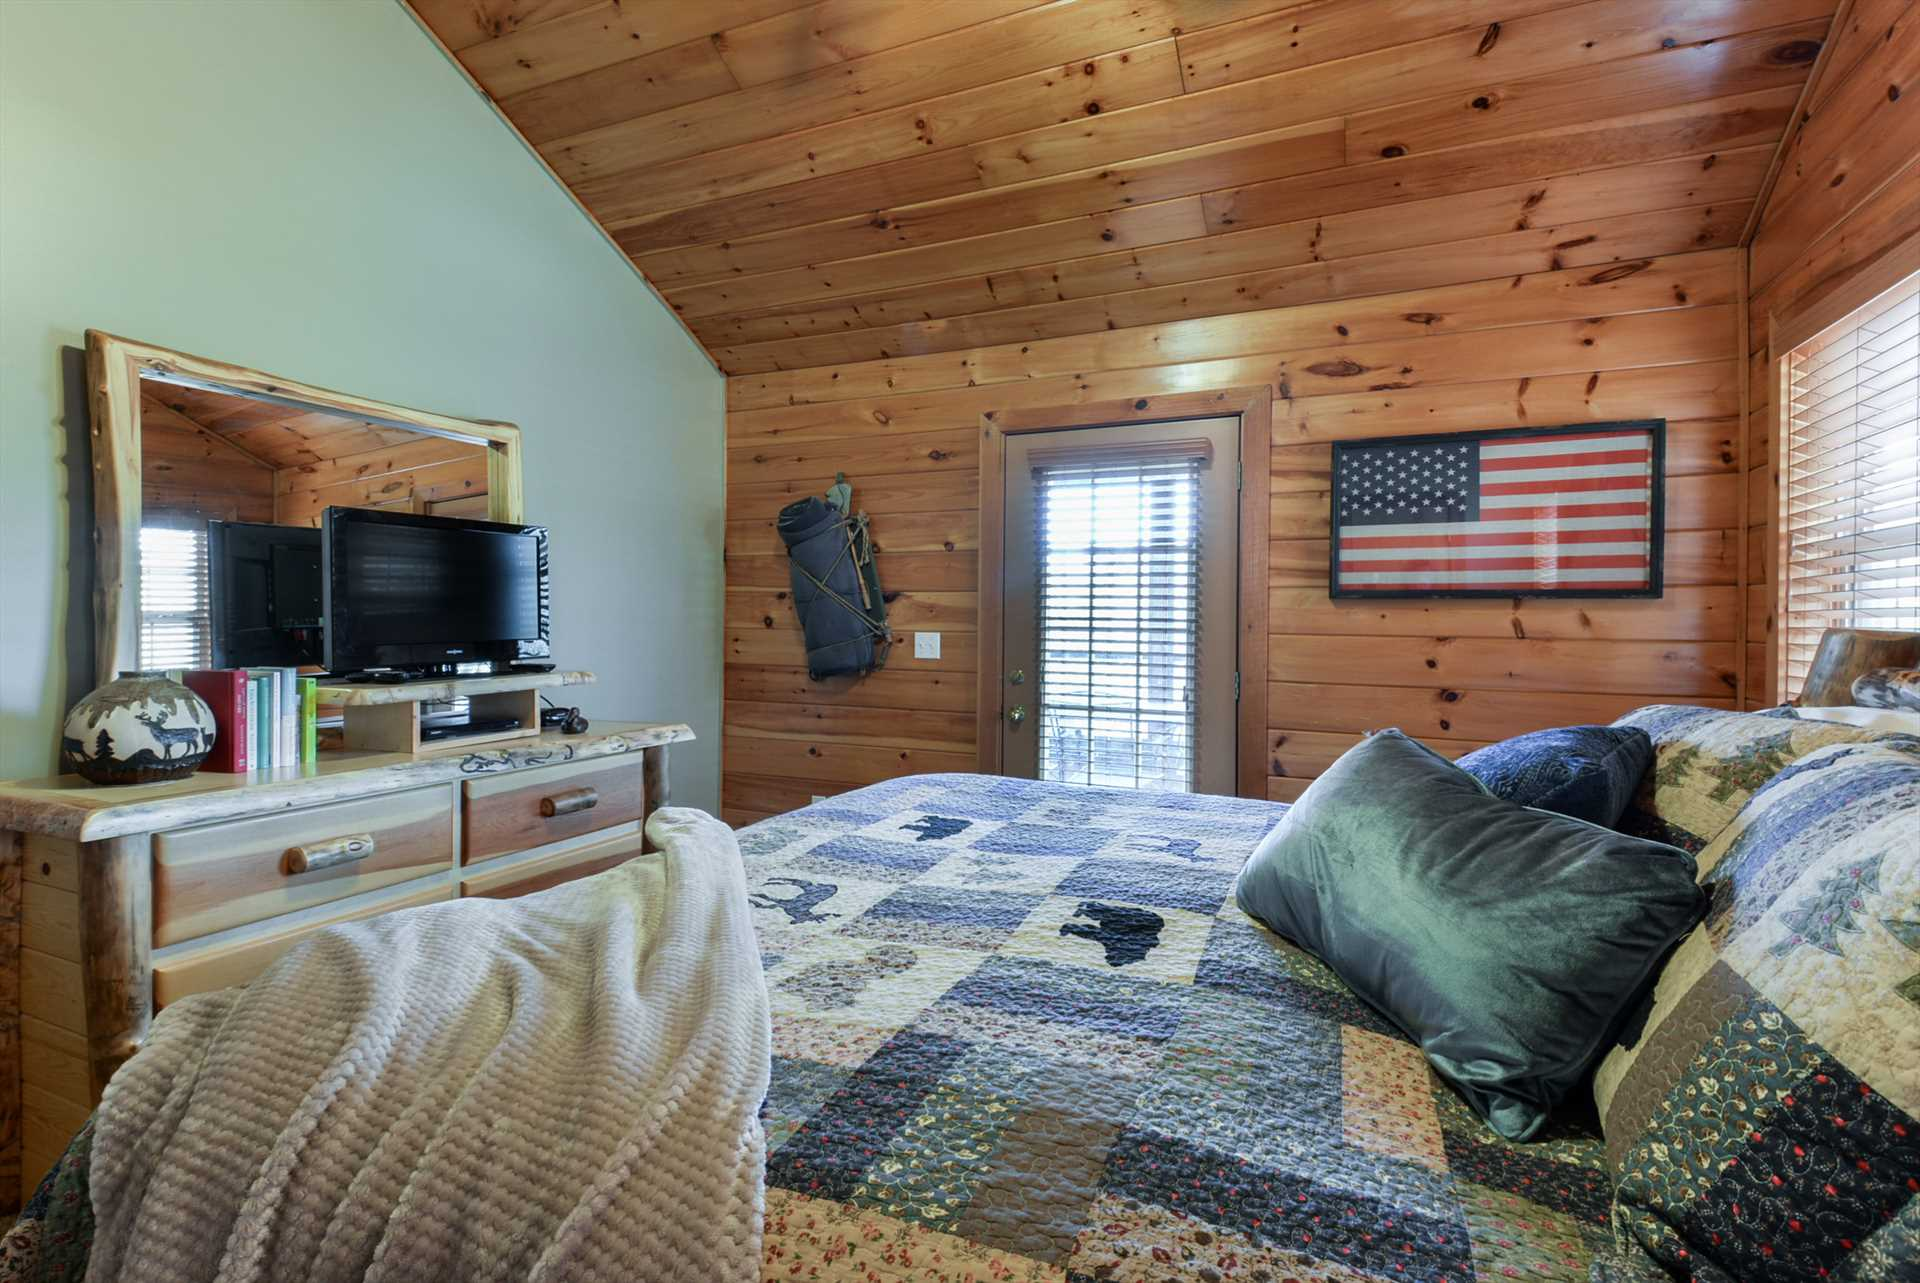 All of the bedrooms in this cabin include flat screen televi